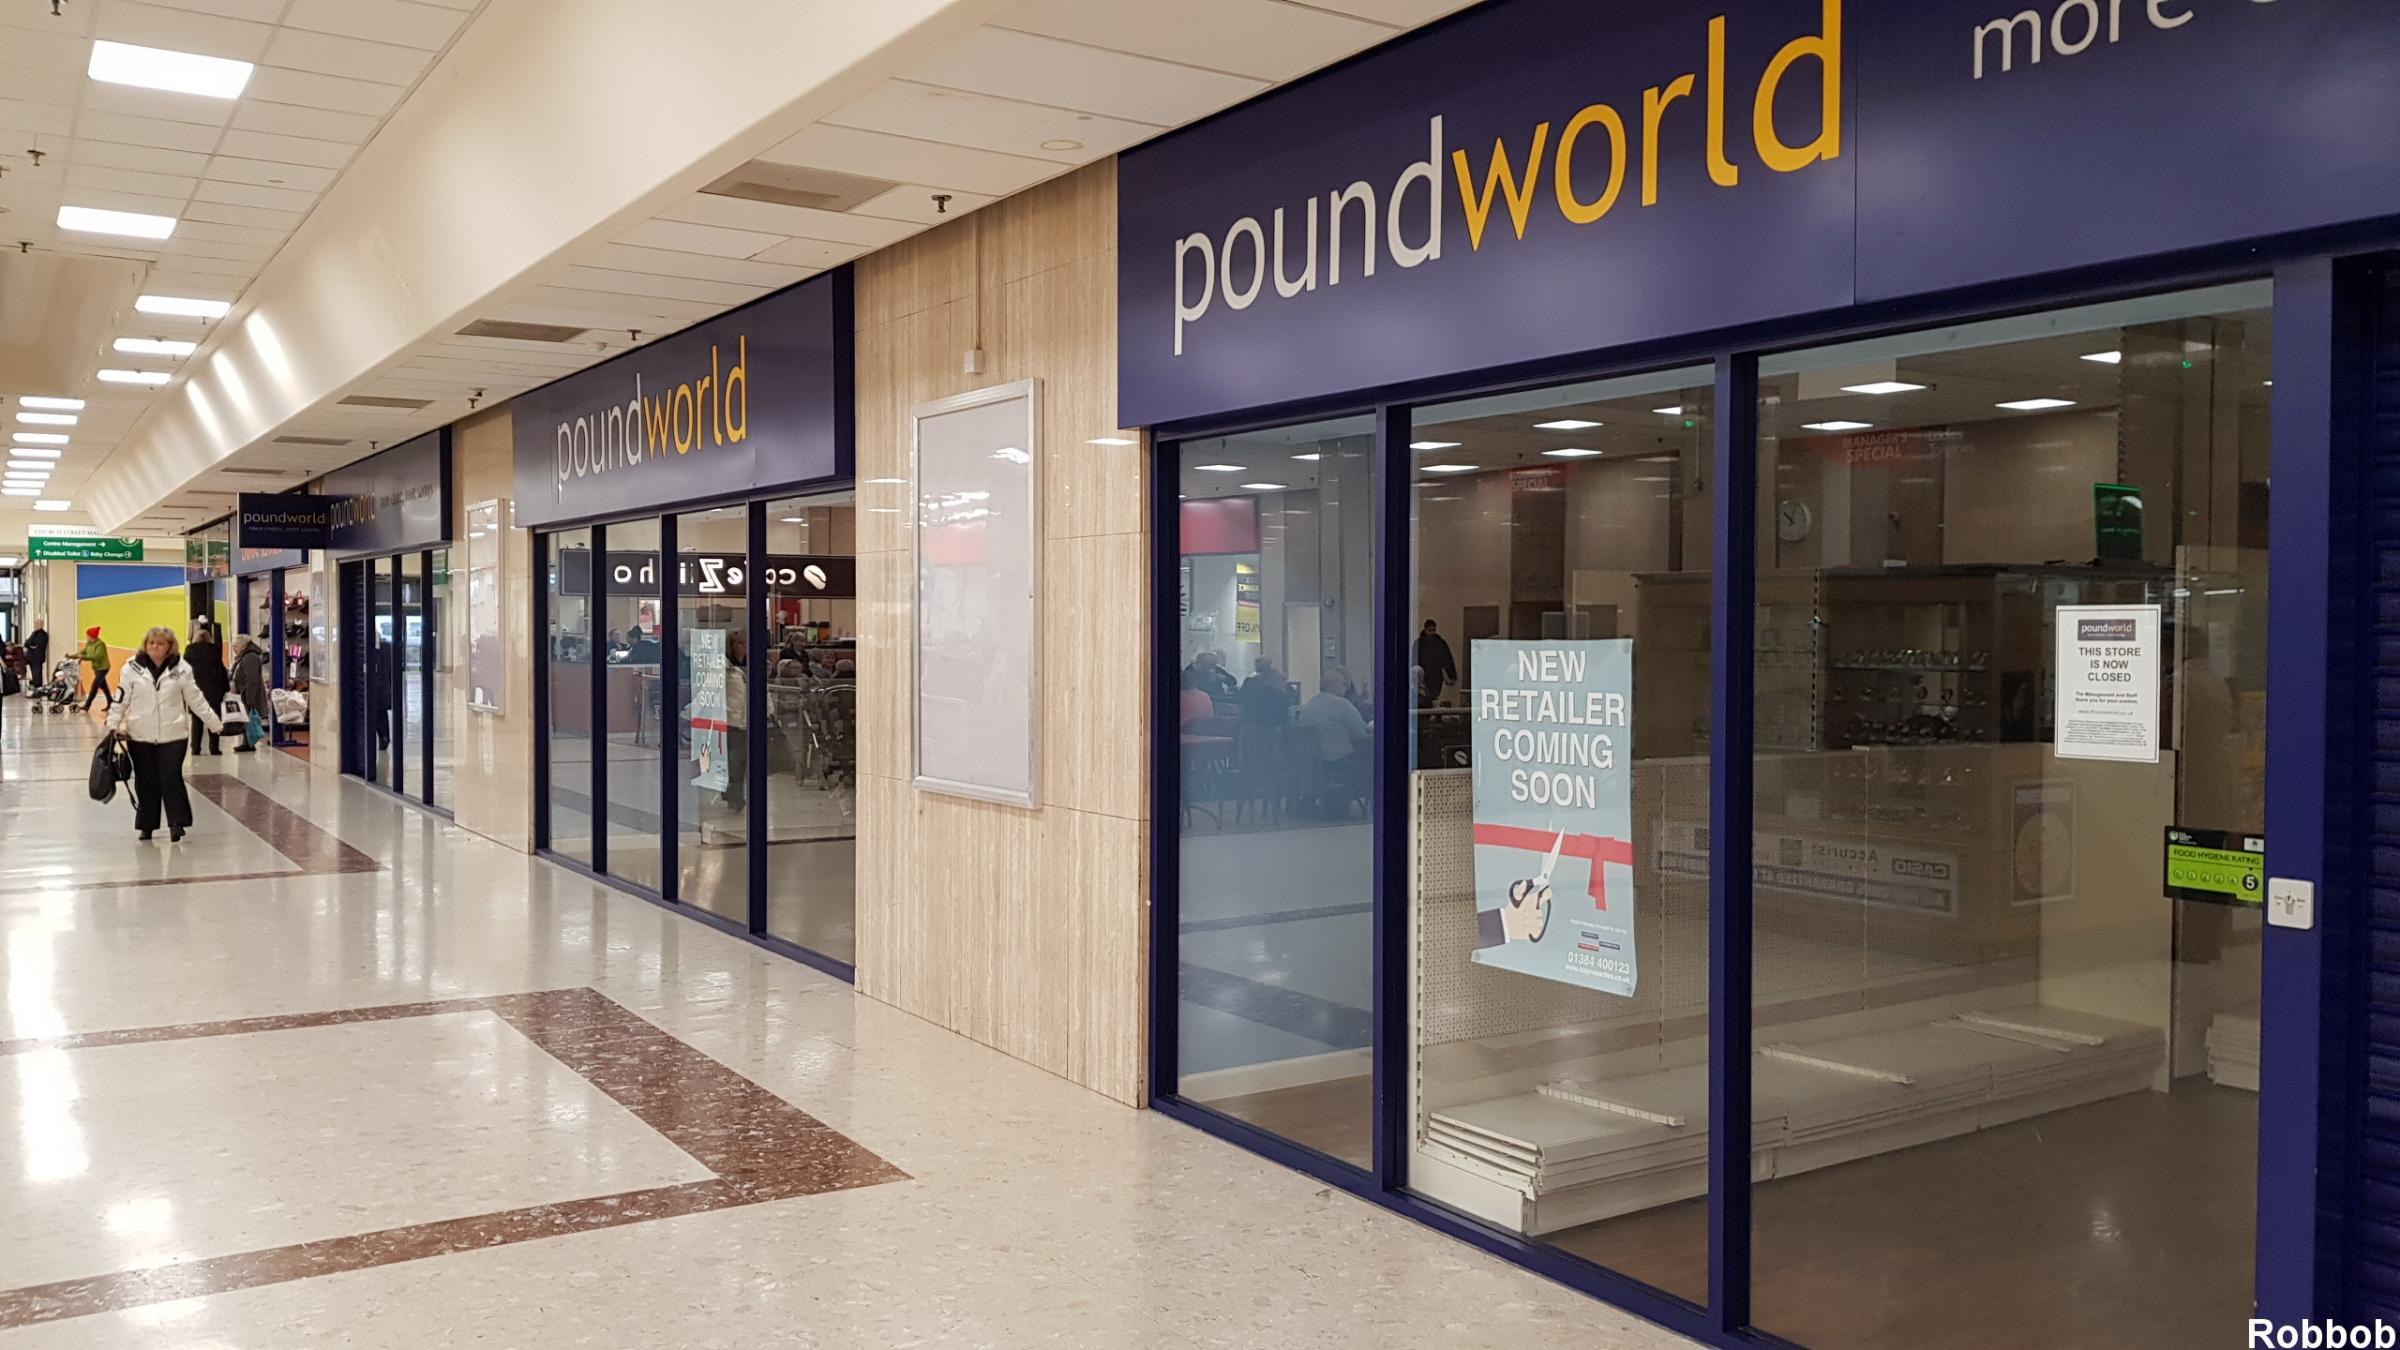 The new store will open in the former Poundworld Pic: Robbob